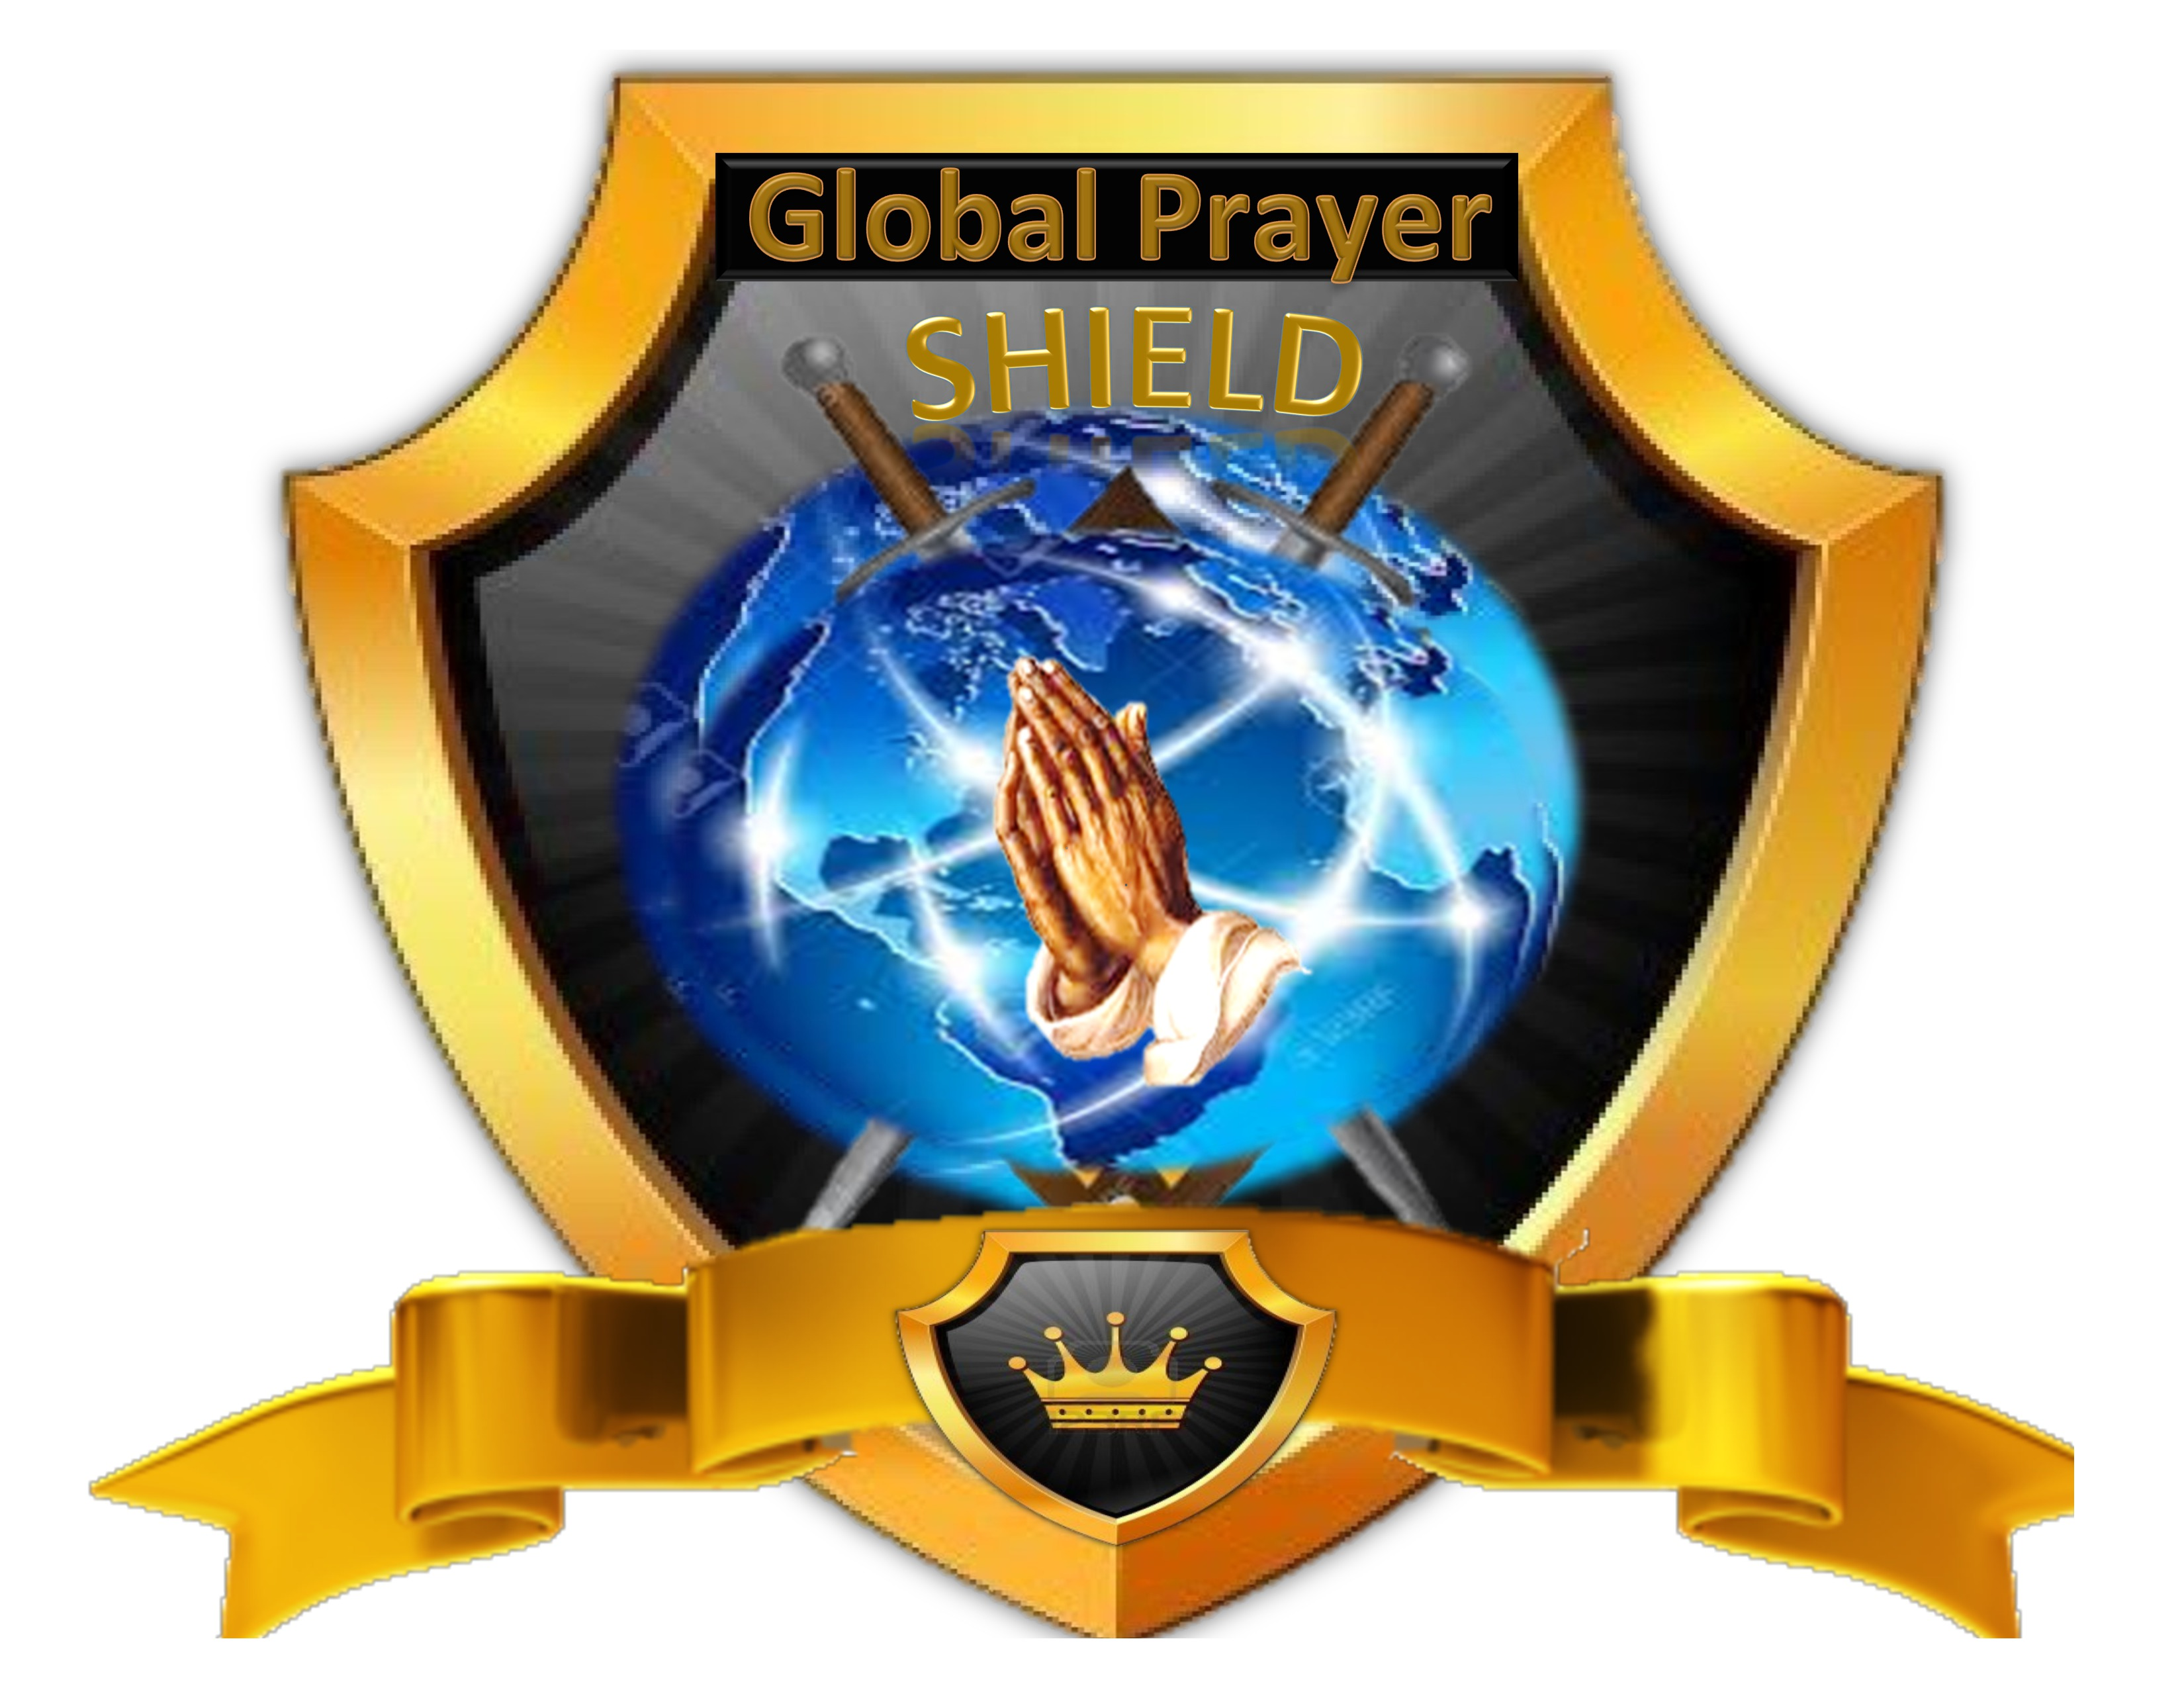 Global Prayer Shield